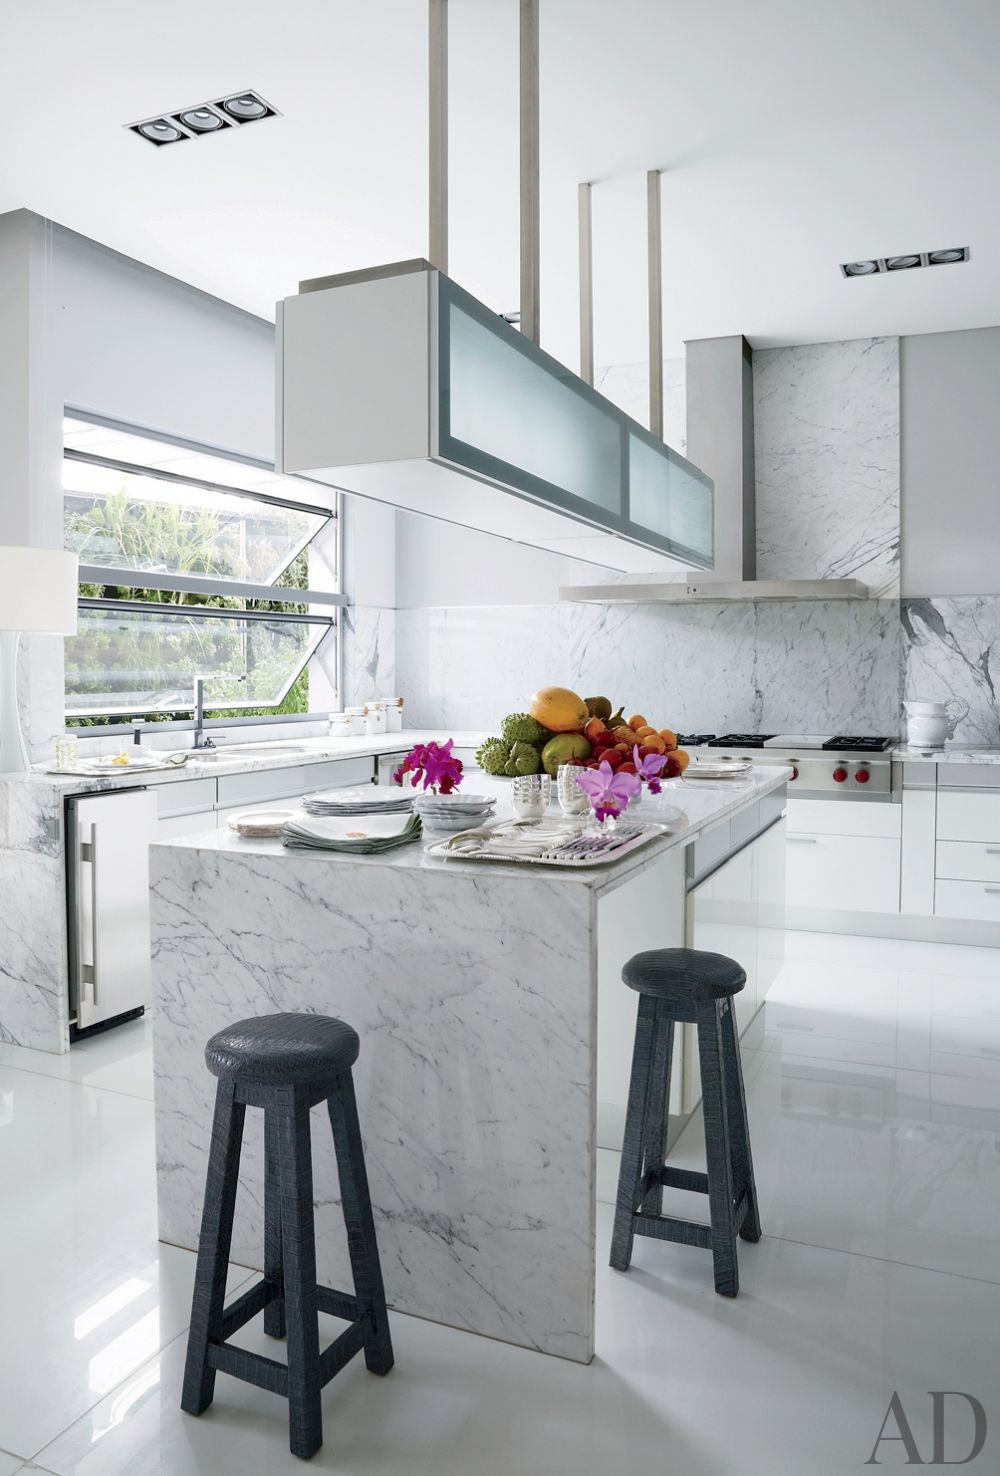 Contemporary Kitchen by Jean-Louis Deniot and Jean-Louis Deniot in Colombia